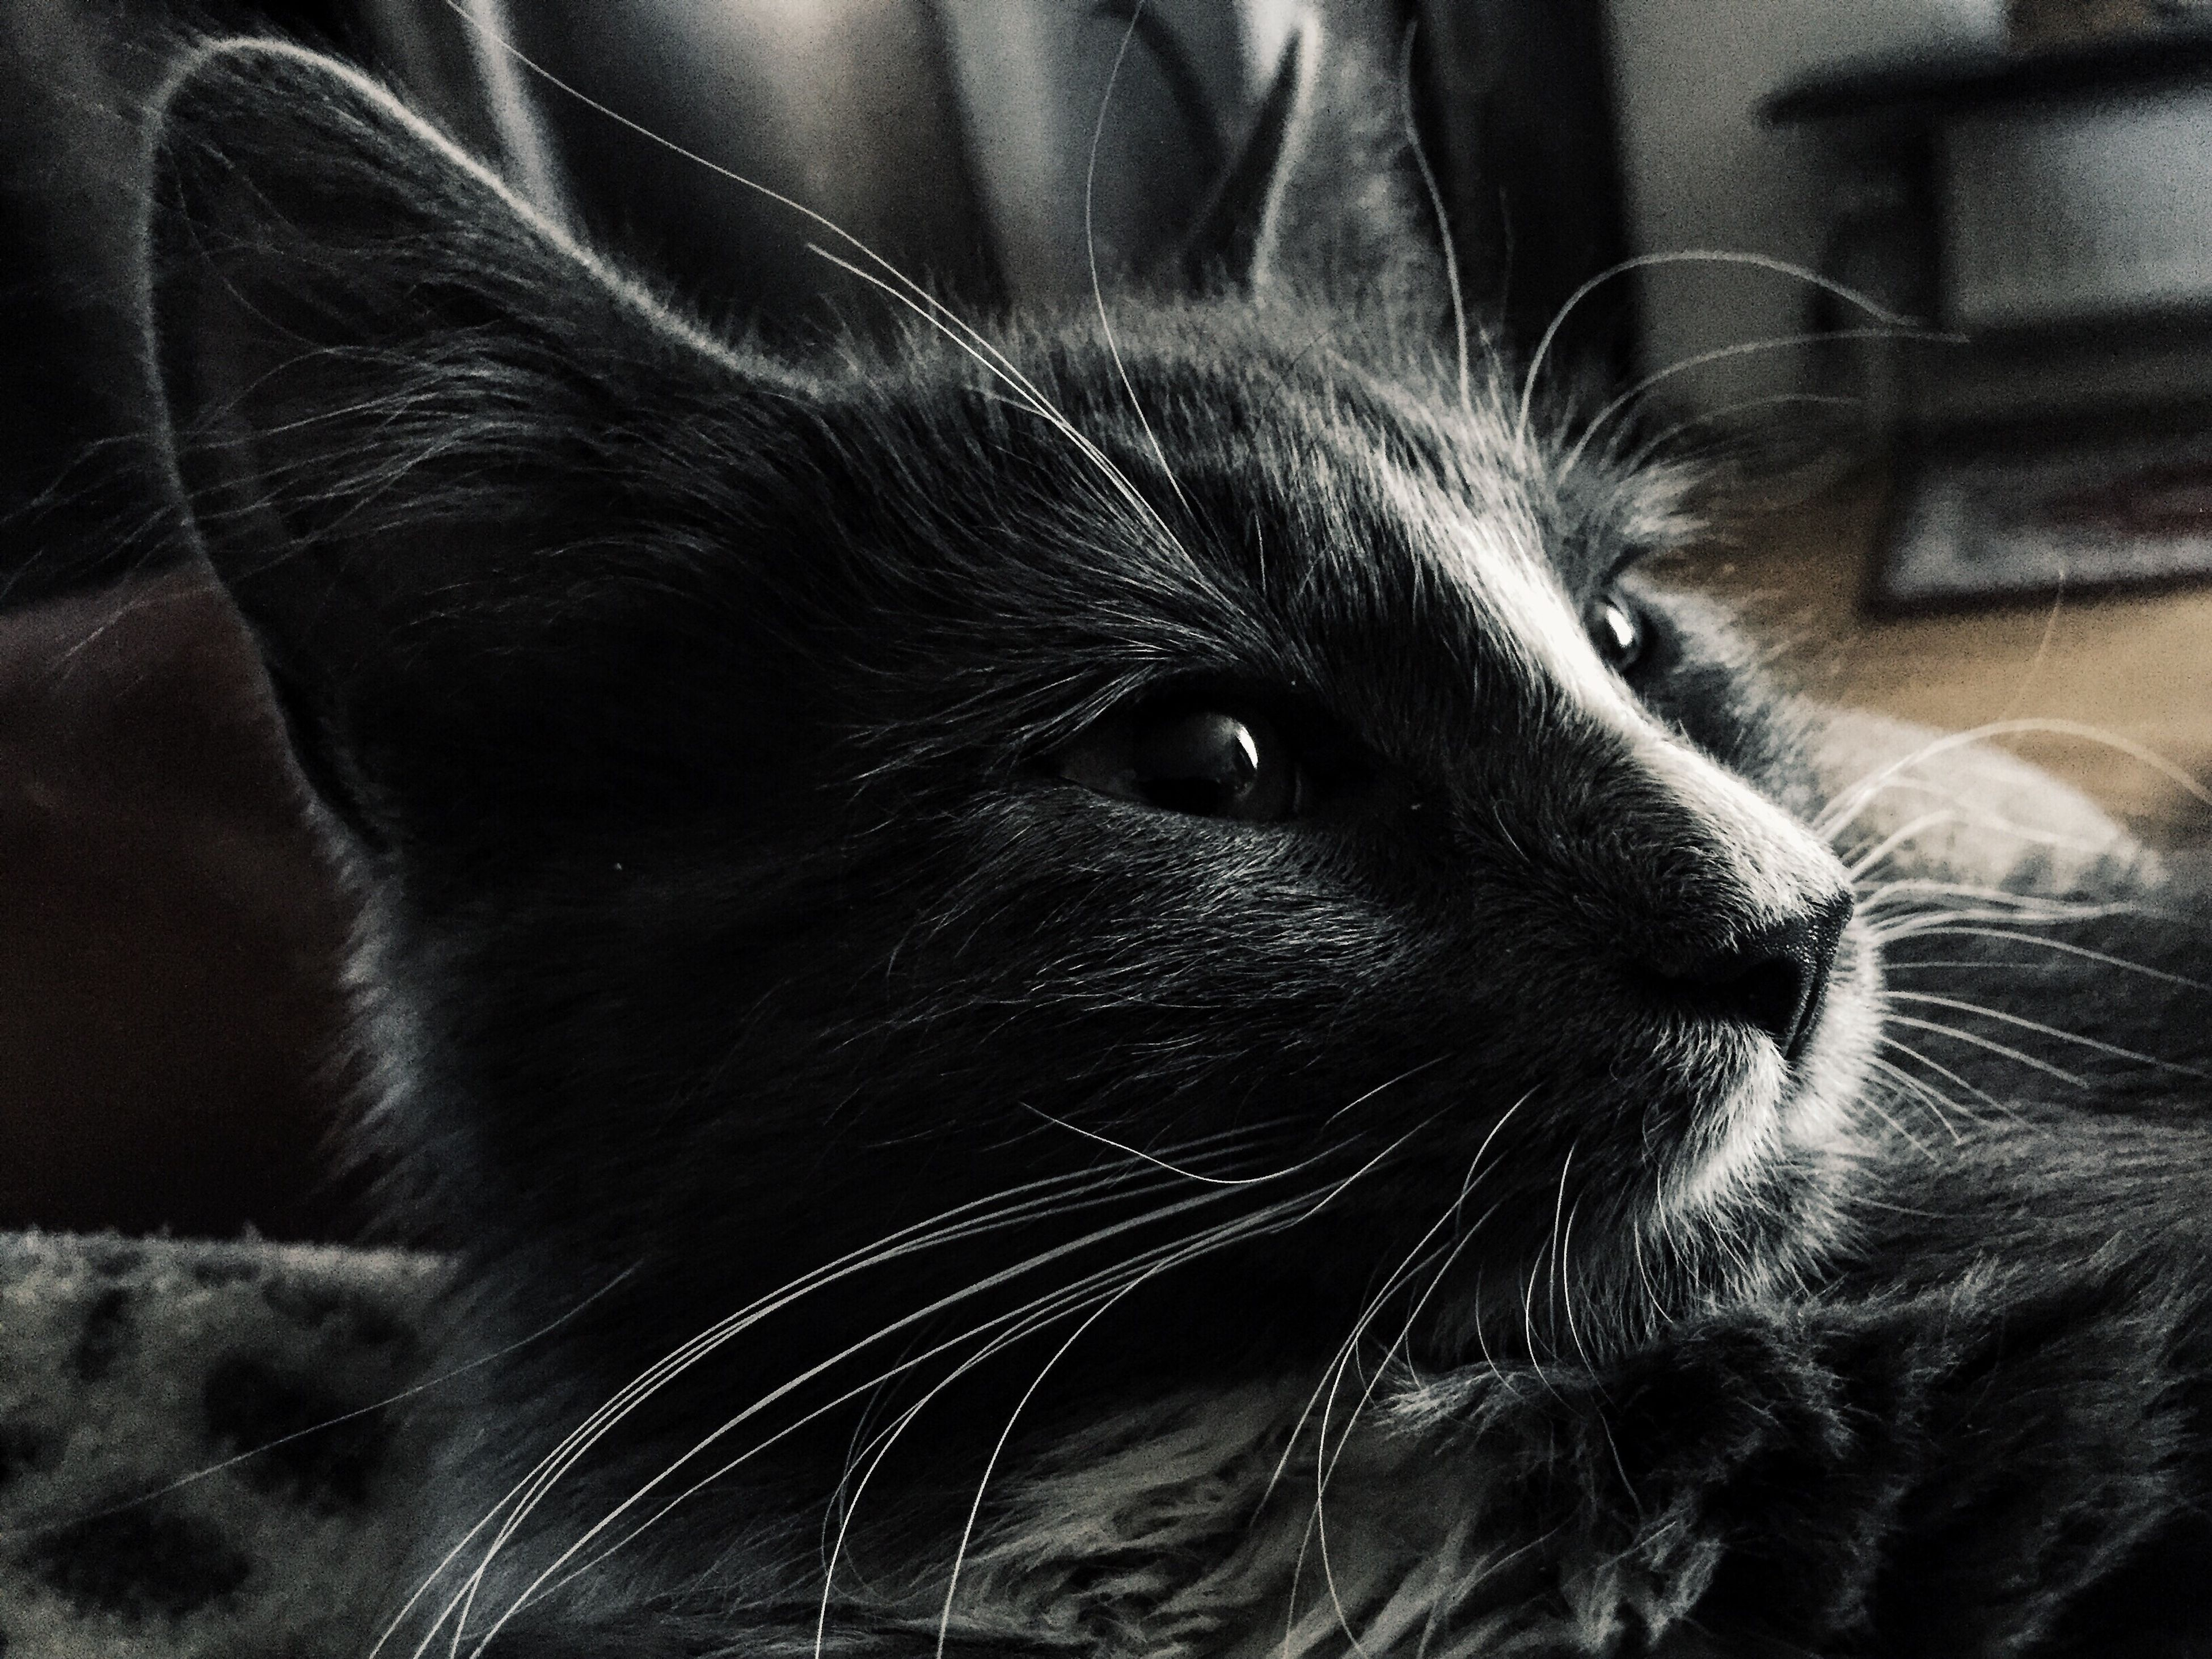 pets, domestic animals, one animal, animal themes, mammal, domestic cat, indoors, cat, close-up, whisker, animal head, feline, relaxation, looking away, no people, animal body part, portrait, black color, focus on foreground, zoology